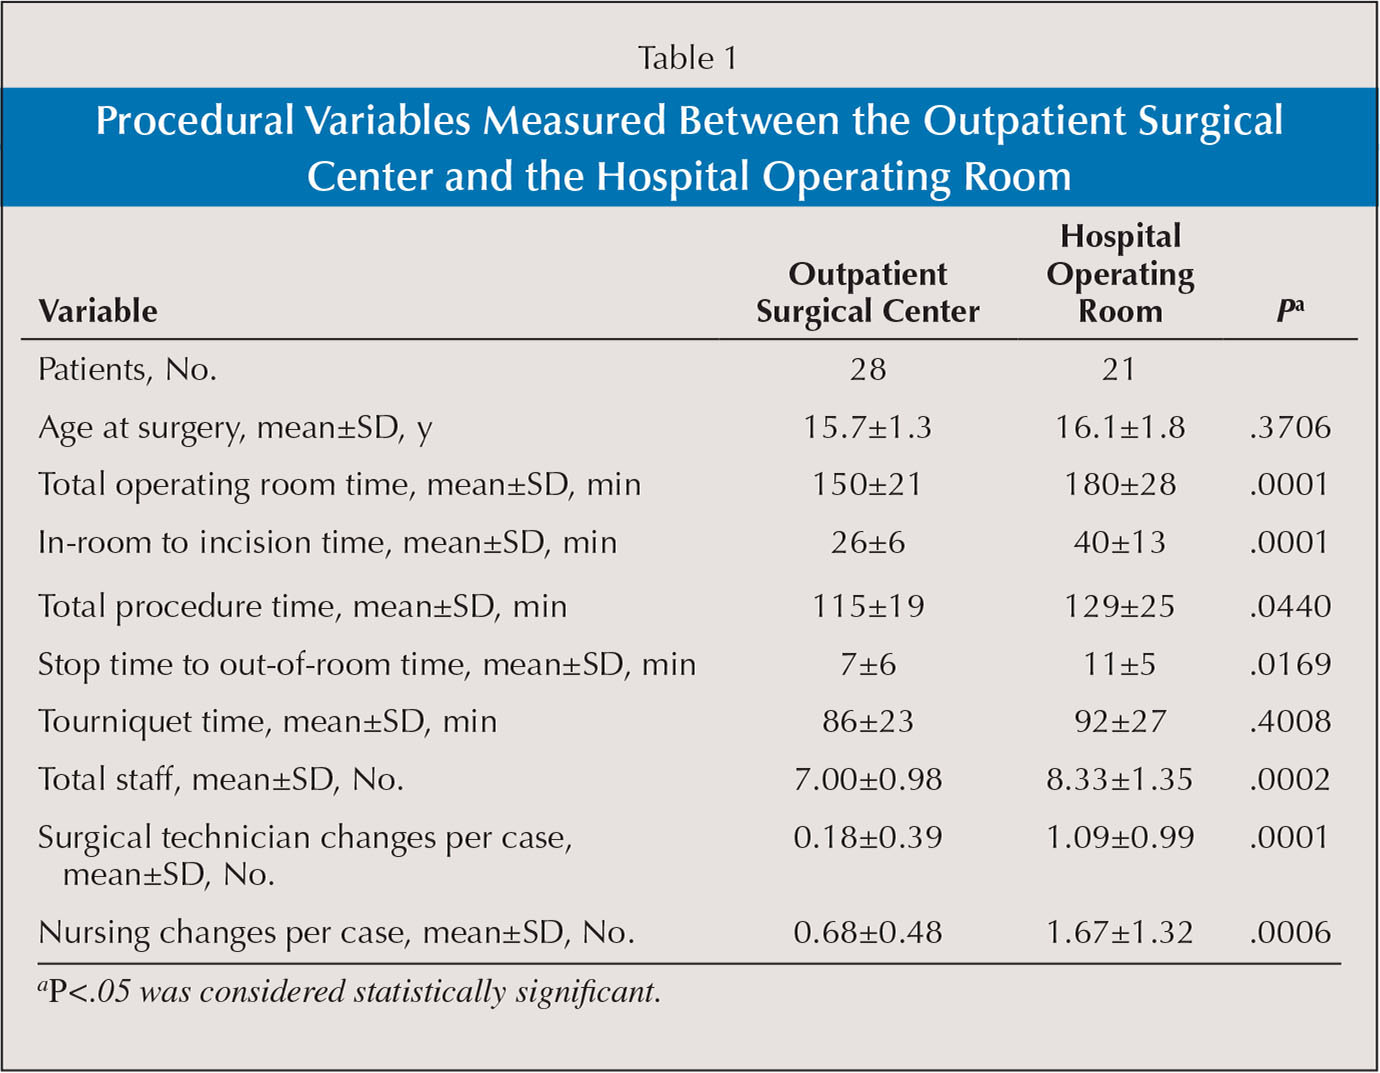 Procedural Variables Measured Between the Outpatient Surgical Center and the Hospital Operating Room